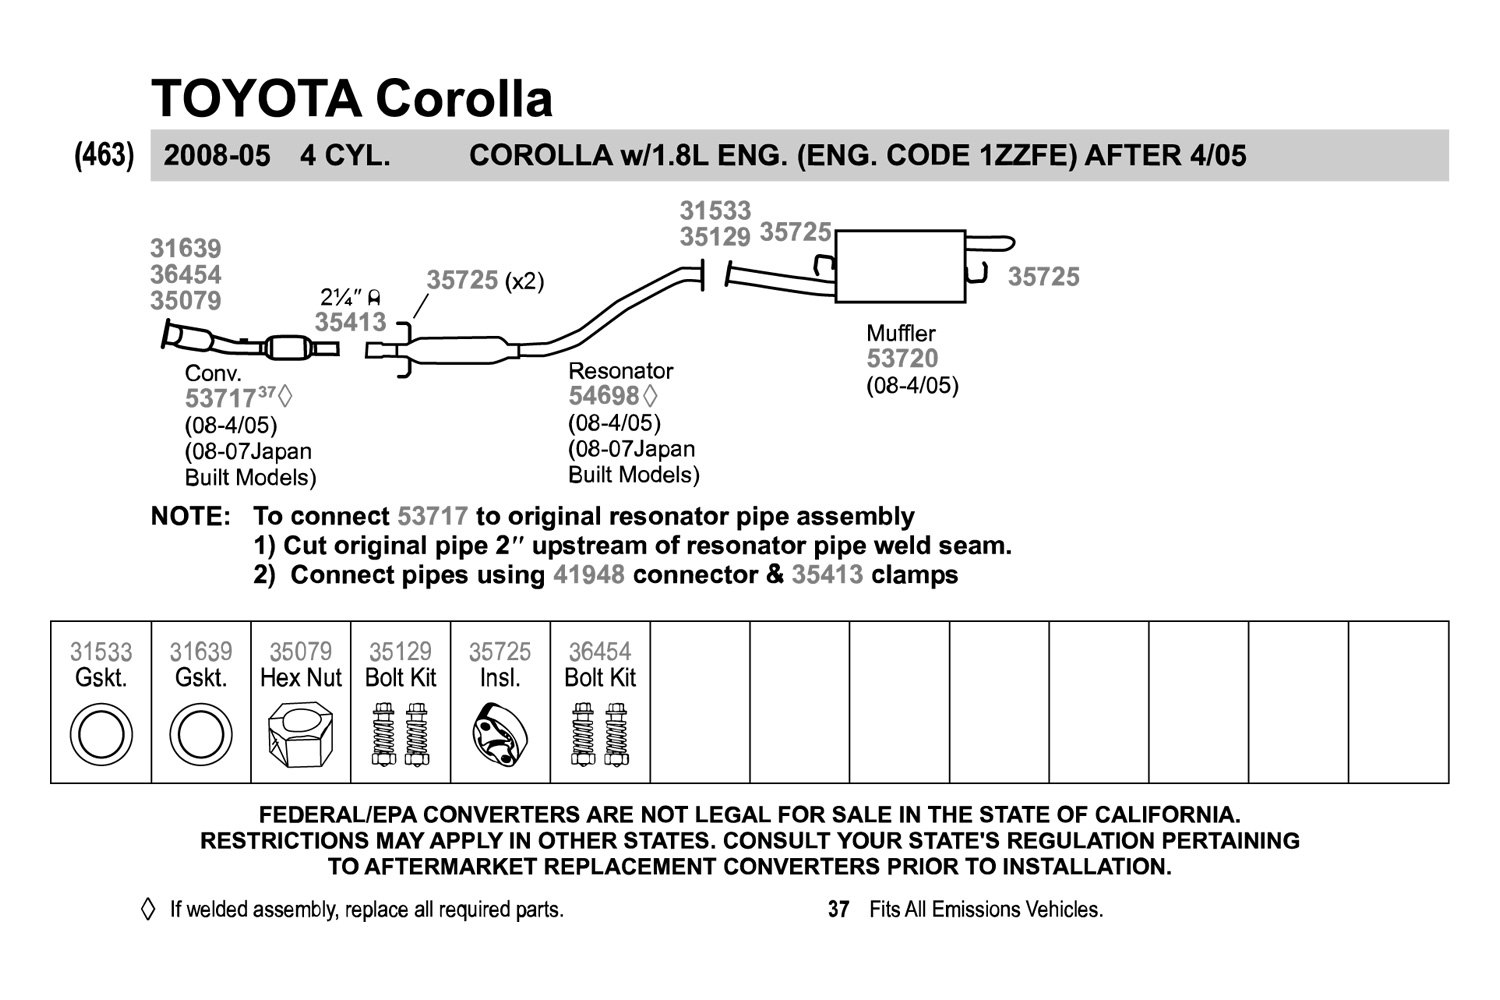 hight resolution of 2000 chevrolet cavalier exhaust diagram category exhaust diagram 1996 chevrolet cavalier z24 exhaust diagram category exhaust diagram